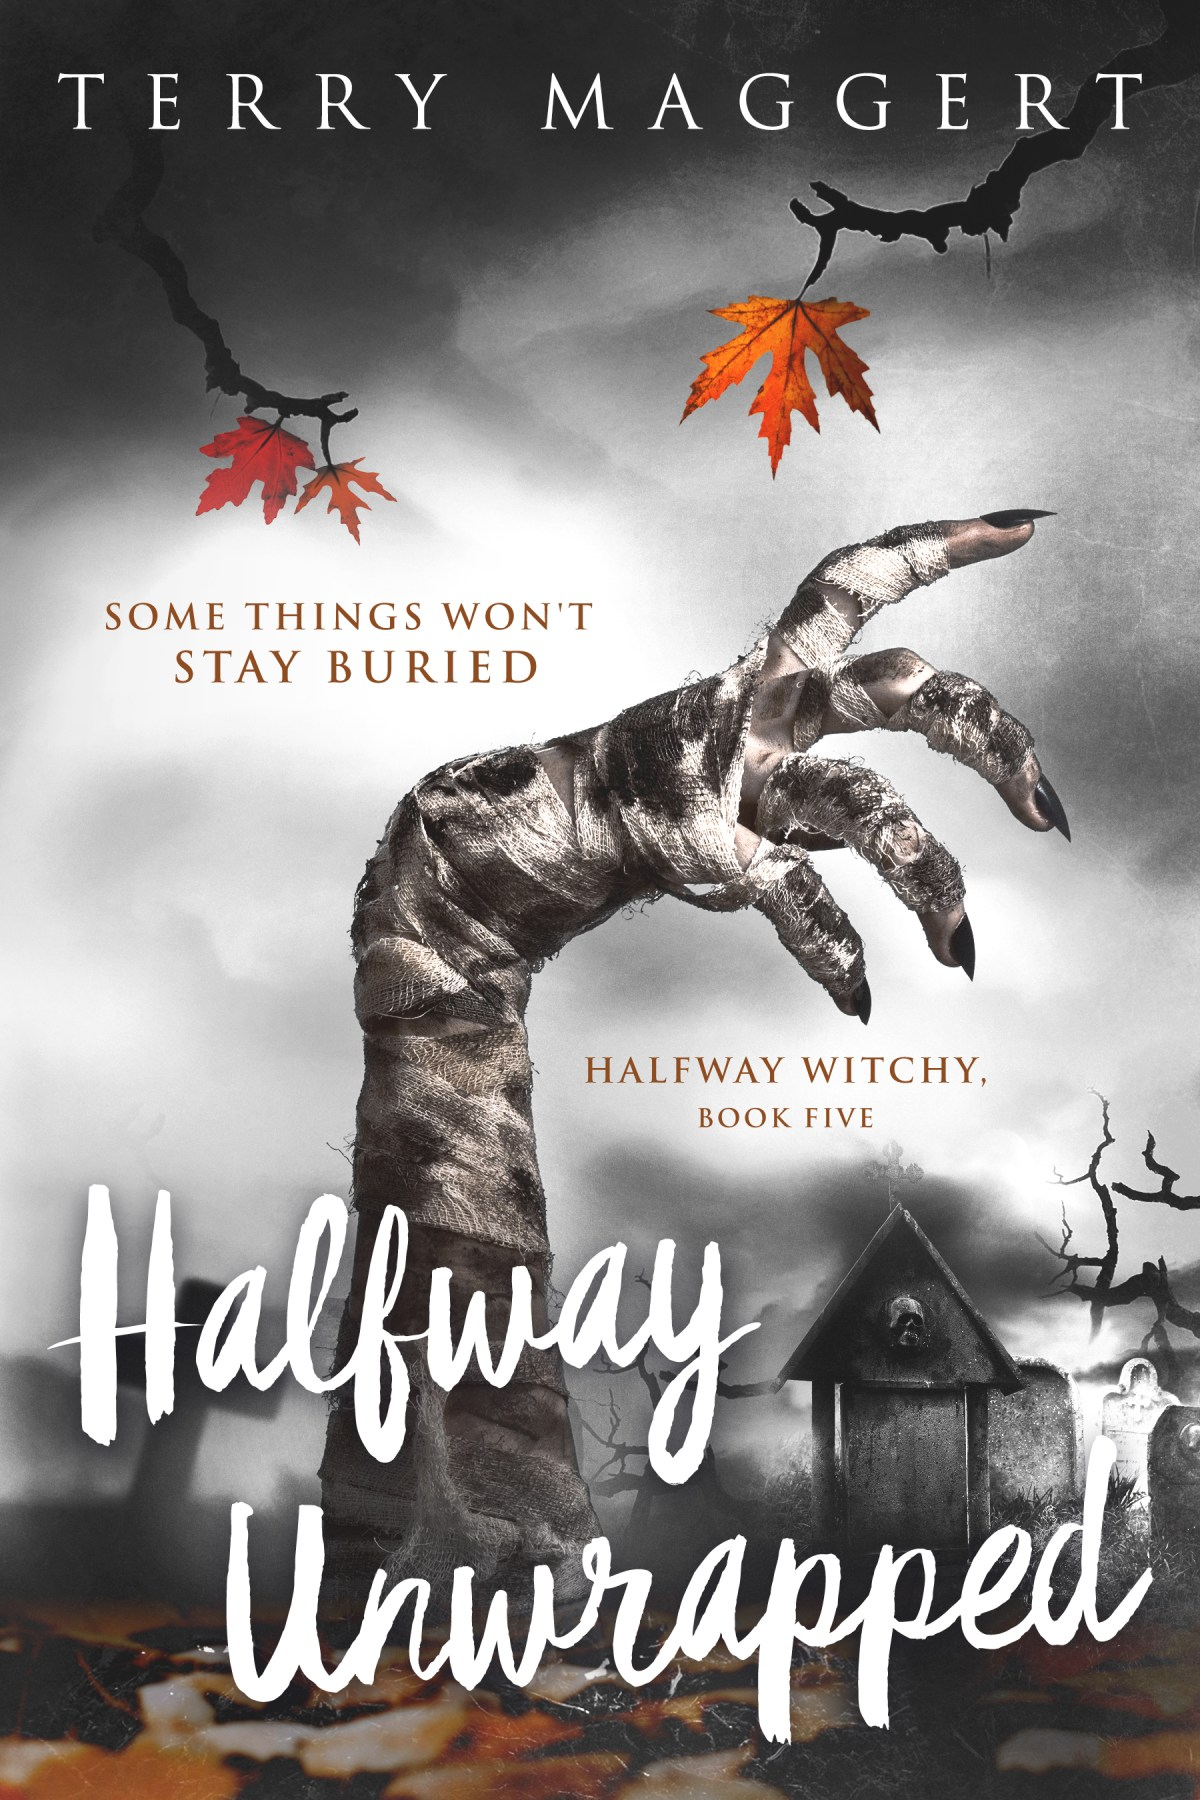 Witchy fantasy series halfway unwrapped